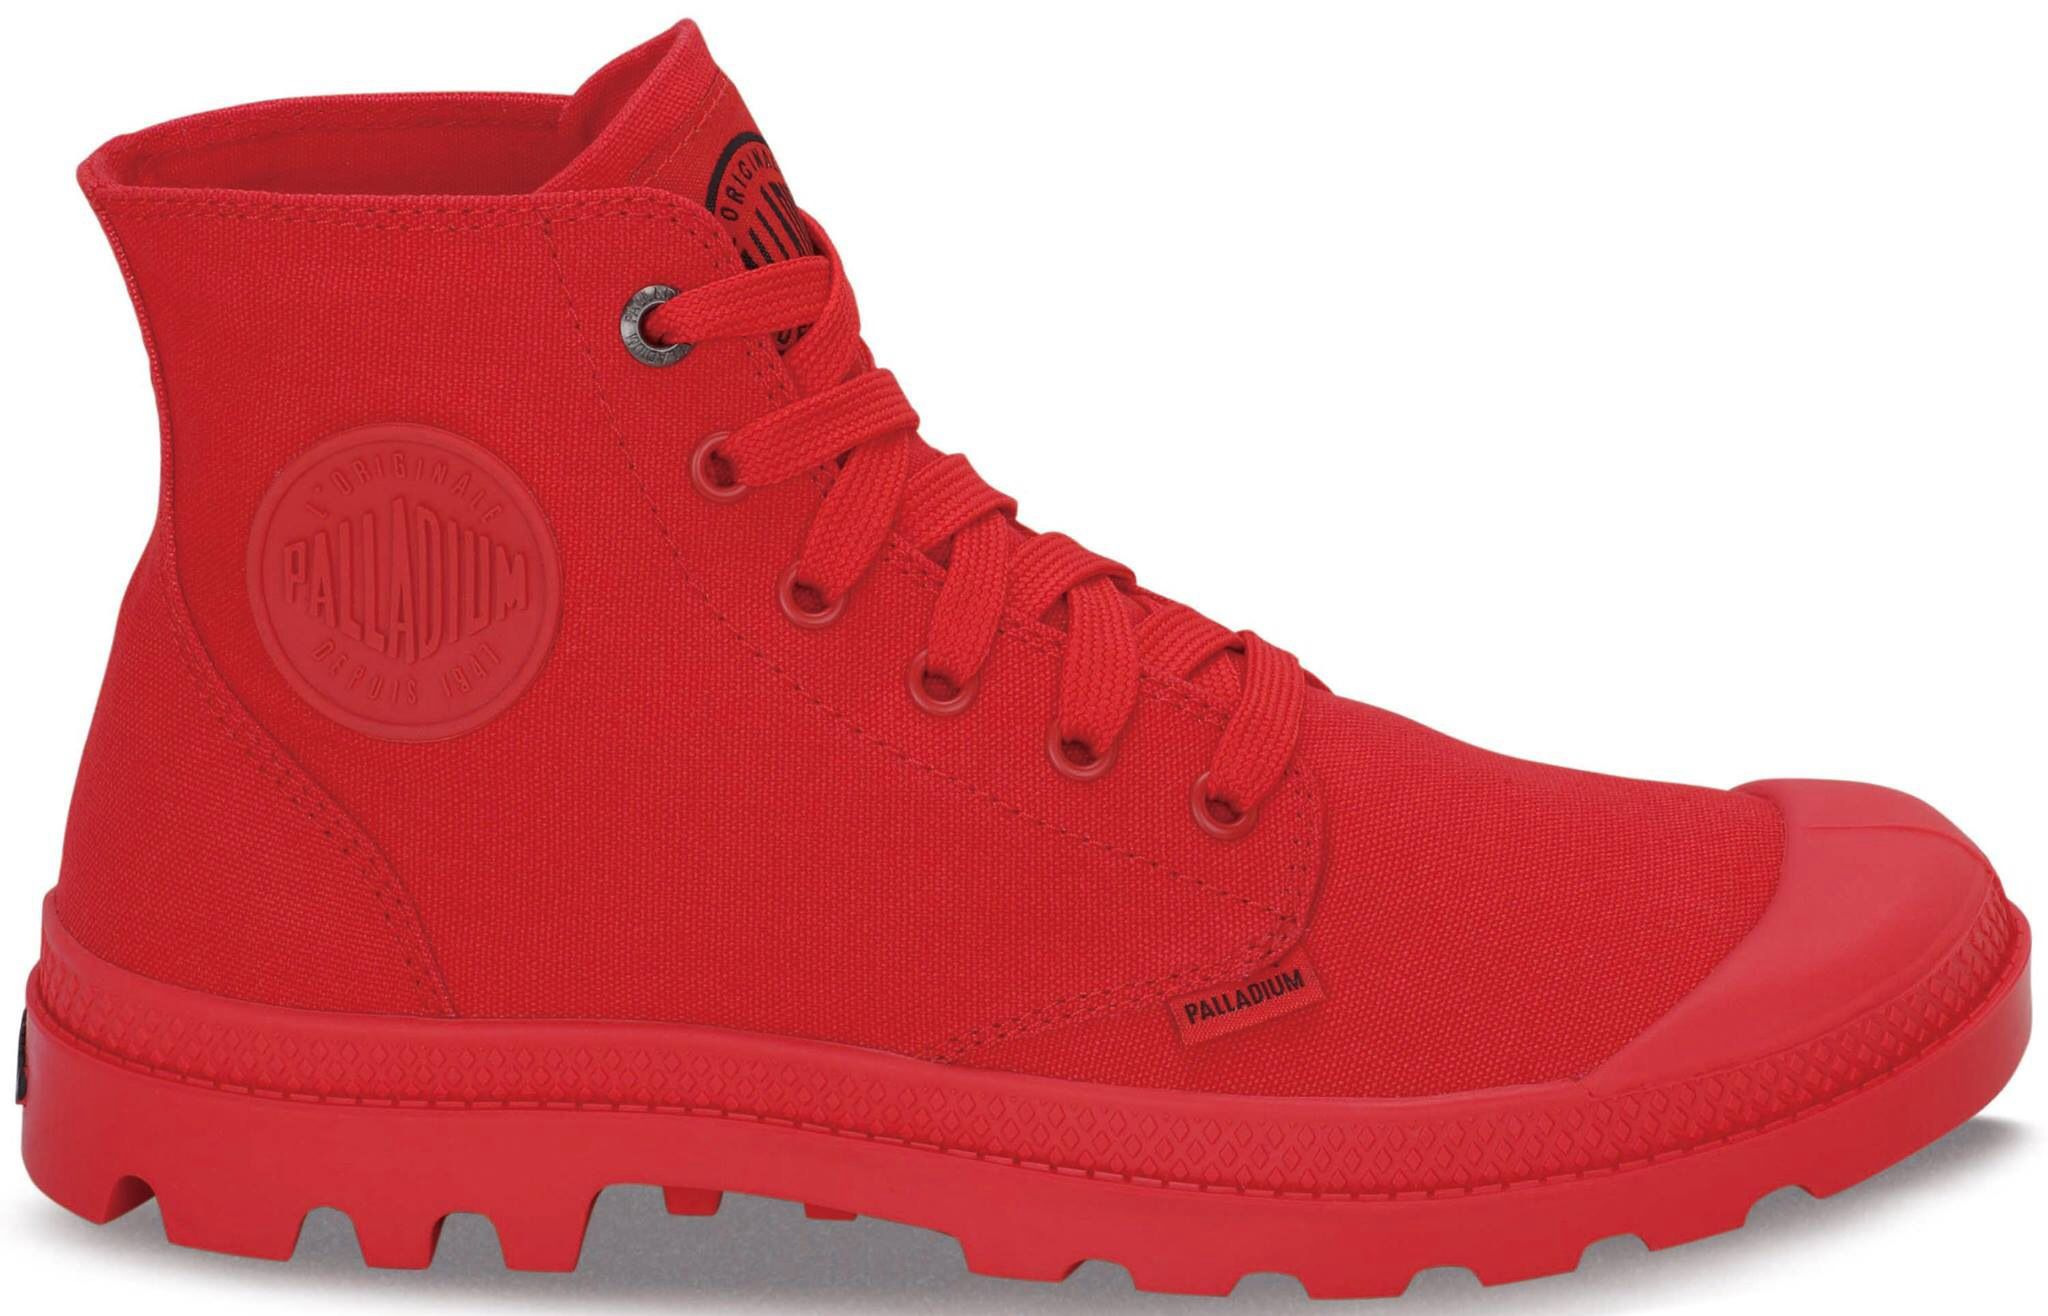 Palladium in all-over red